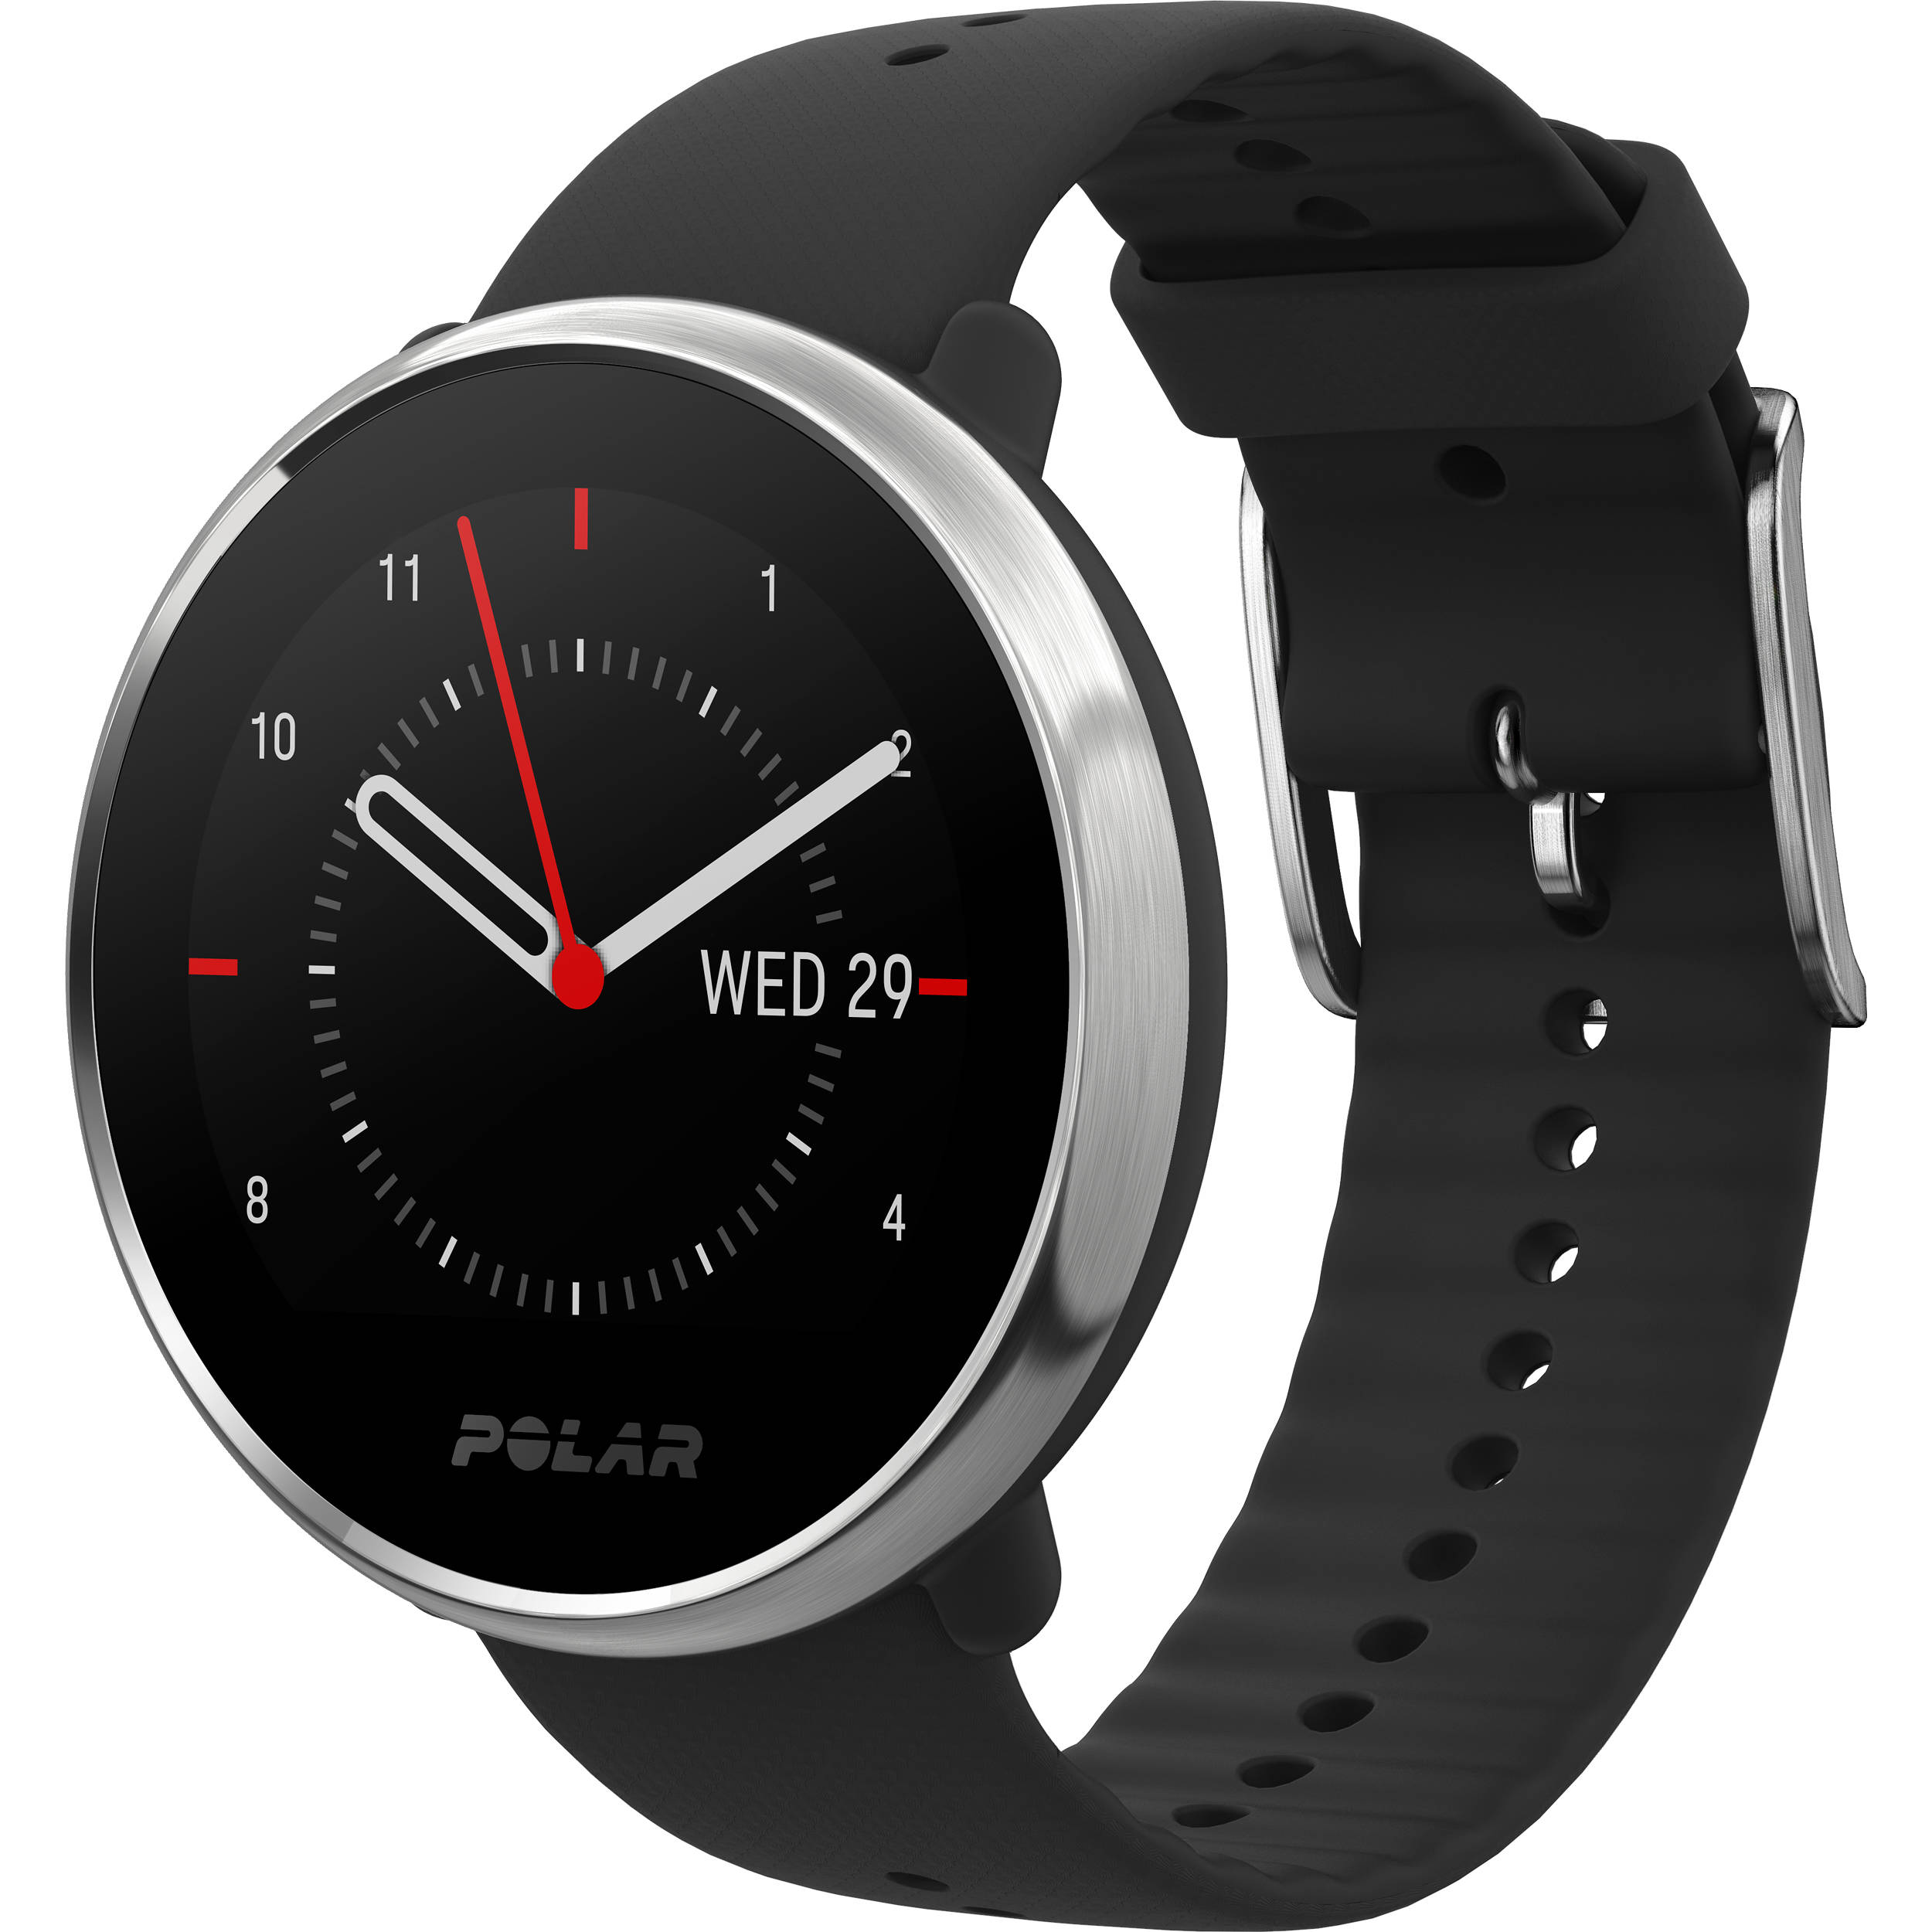 Polar Ignite GPS Fitness Watch with Heart Rate Monitor (Small, Black/Silver)